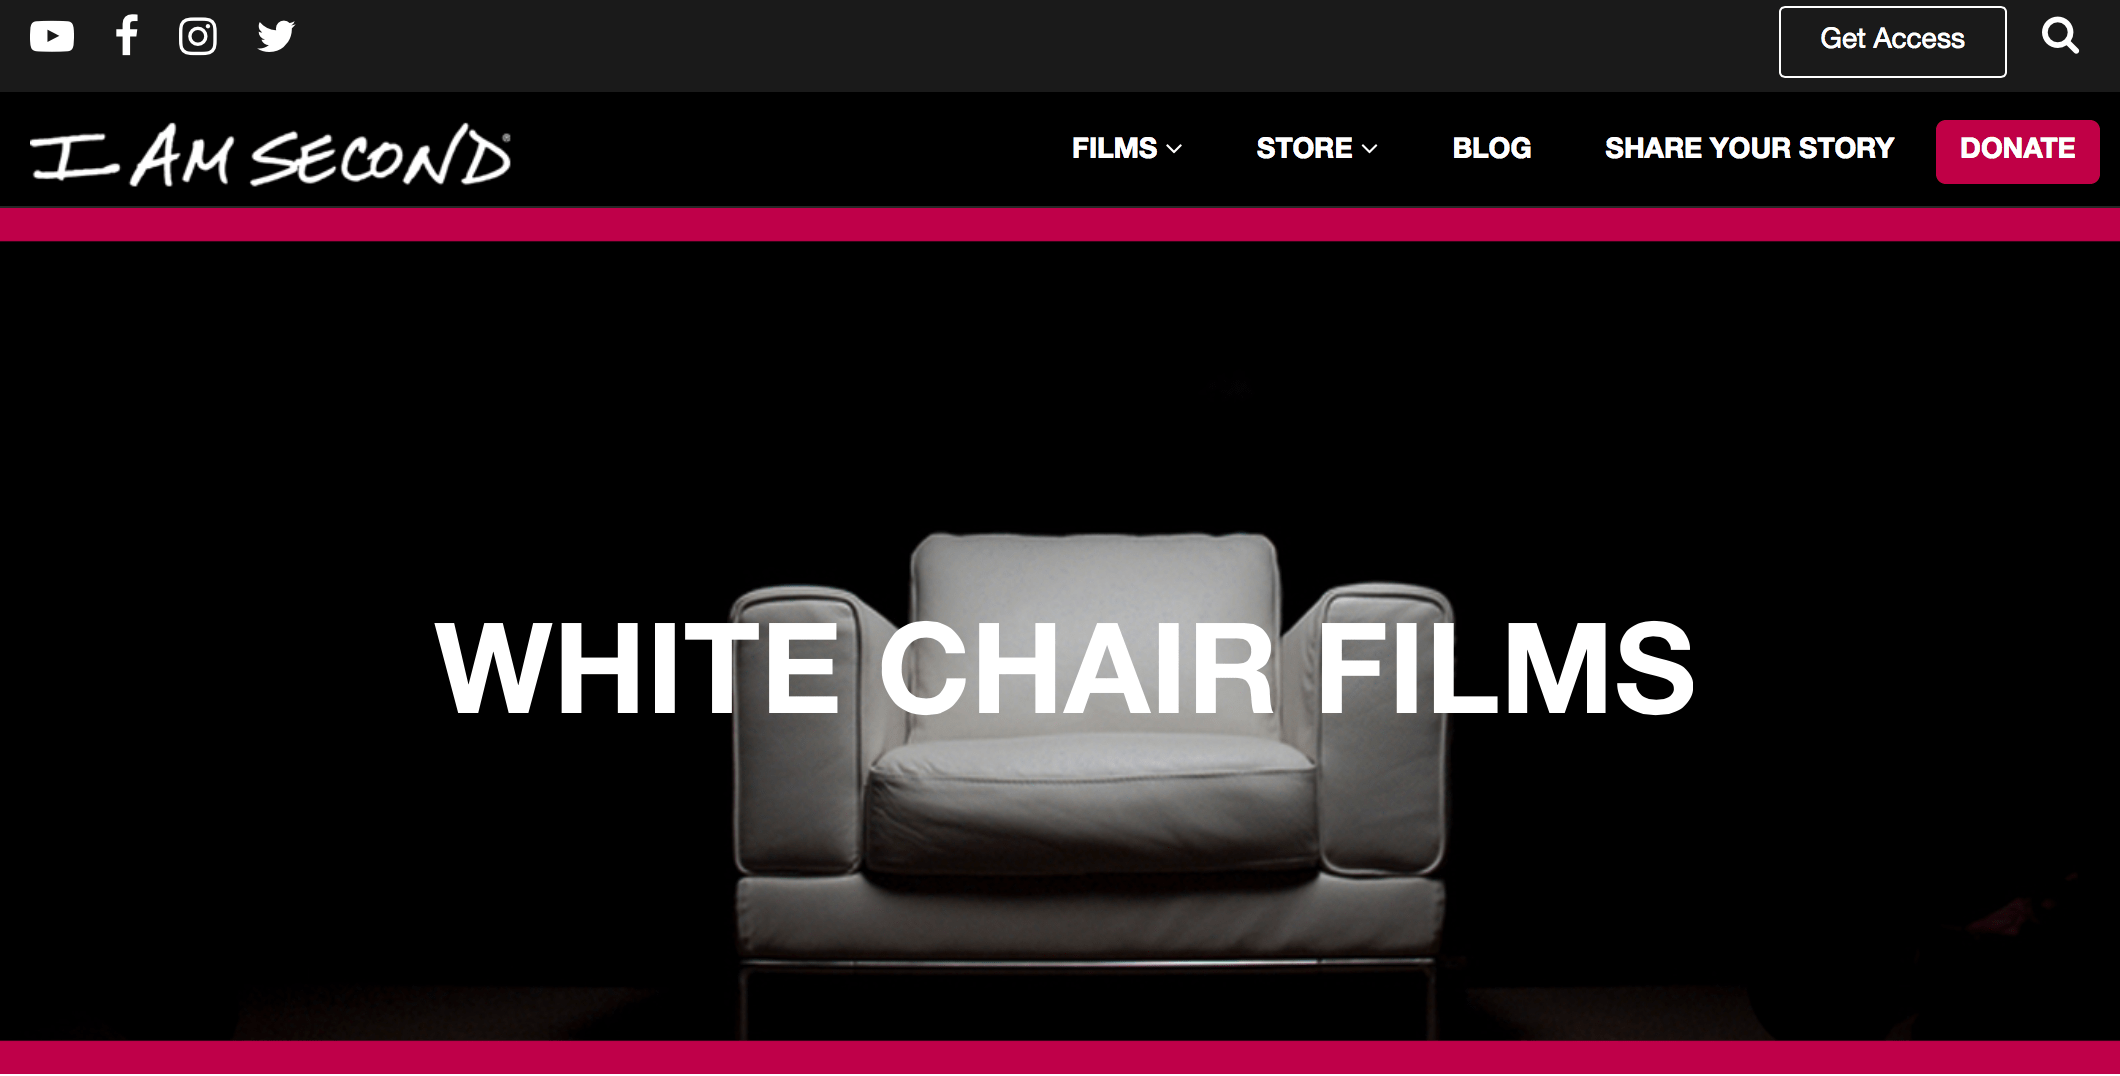 White Chair Films